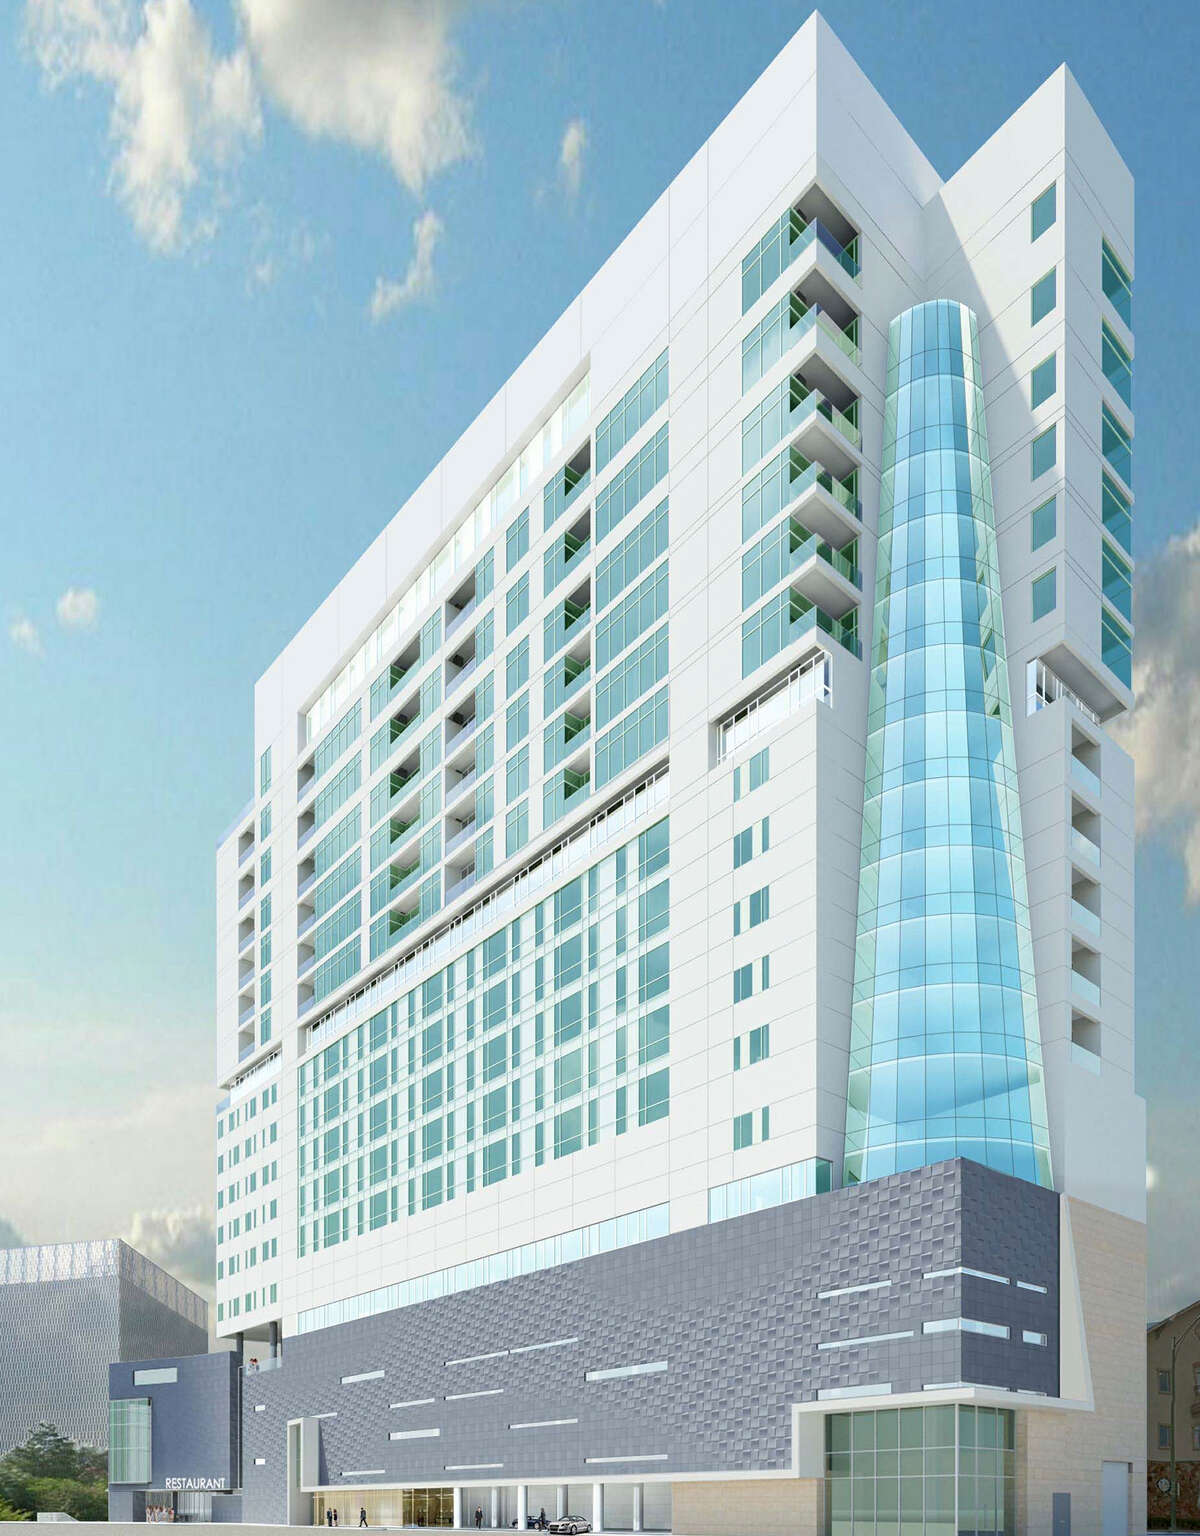 Powers Brown Architecture has submitted plans to the city for a tower on a vacant lot at 101 Lexington Ave. The tower would include seven levels of parking, six of hotel space and seven of condominiums.